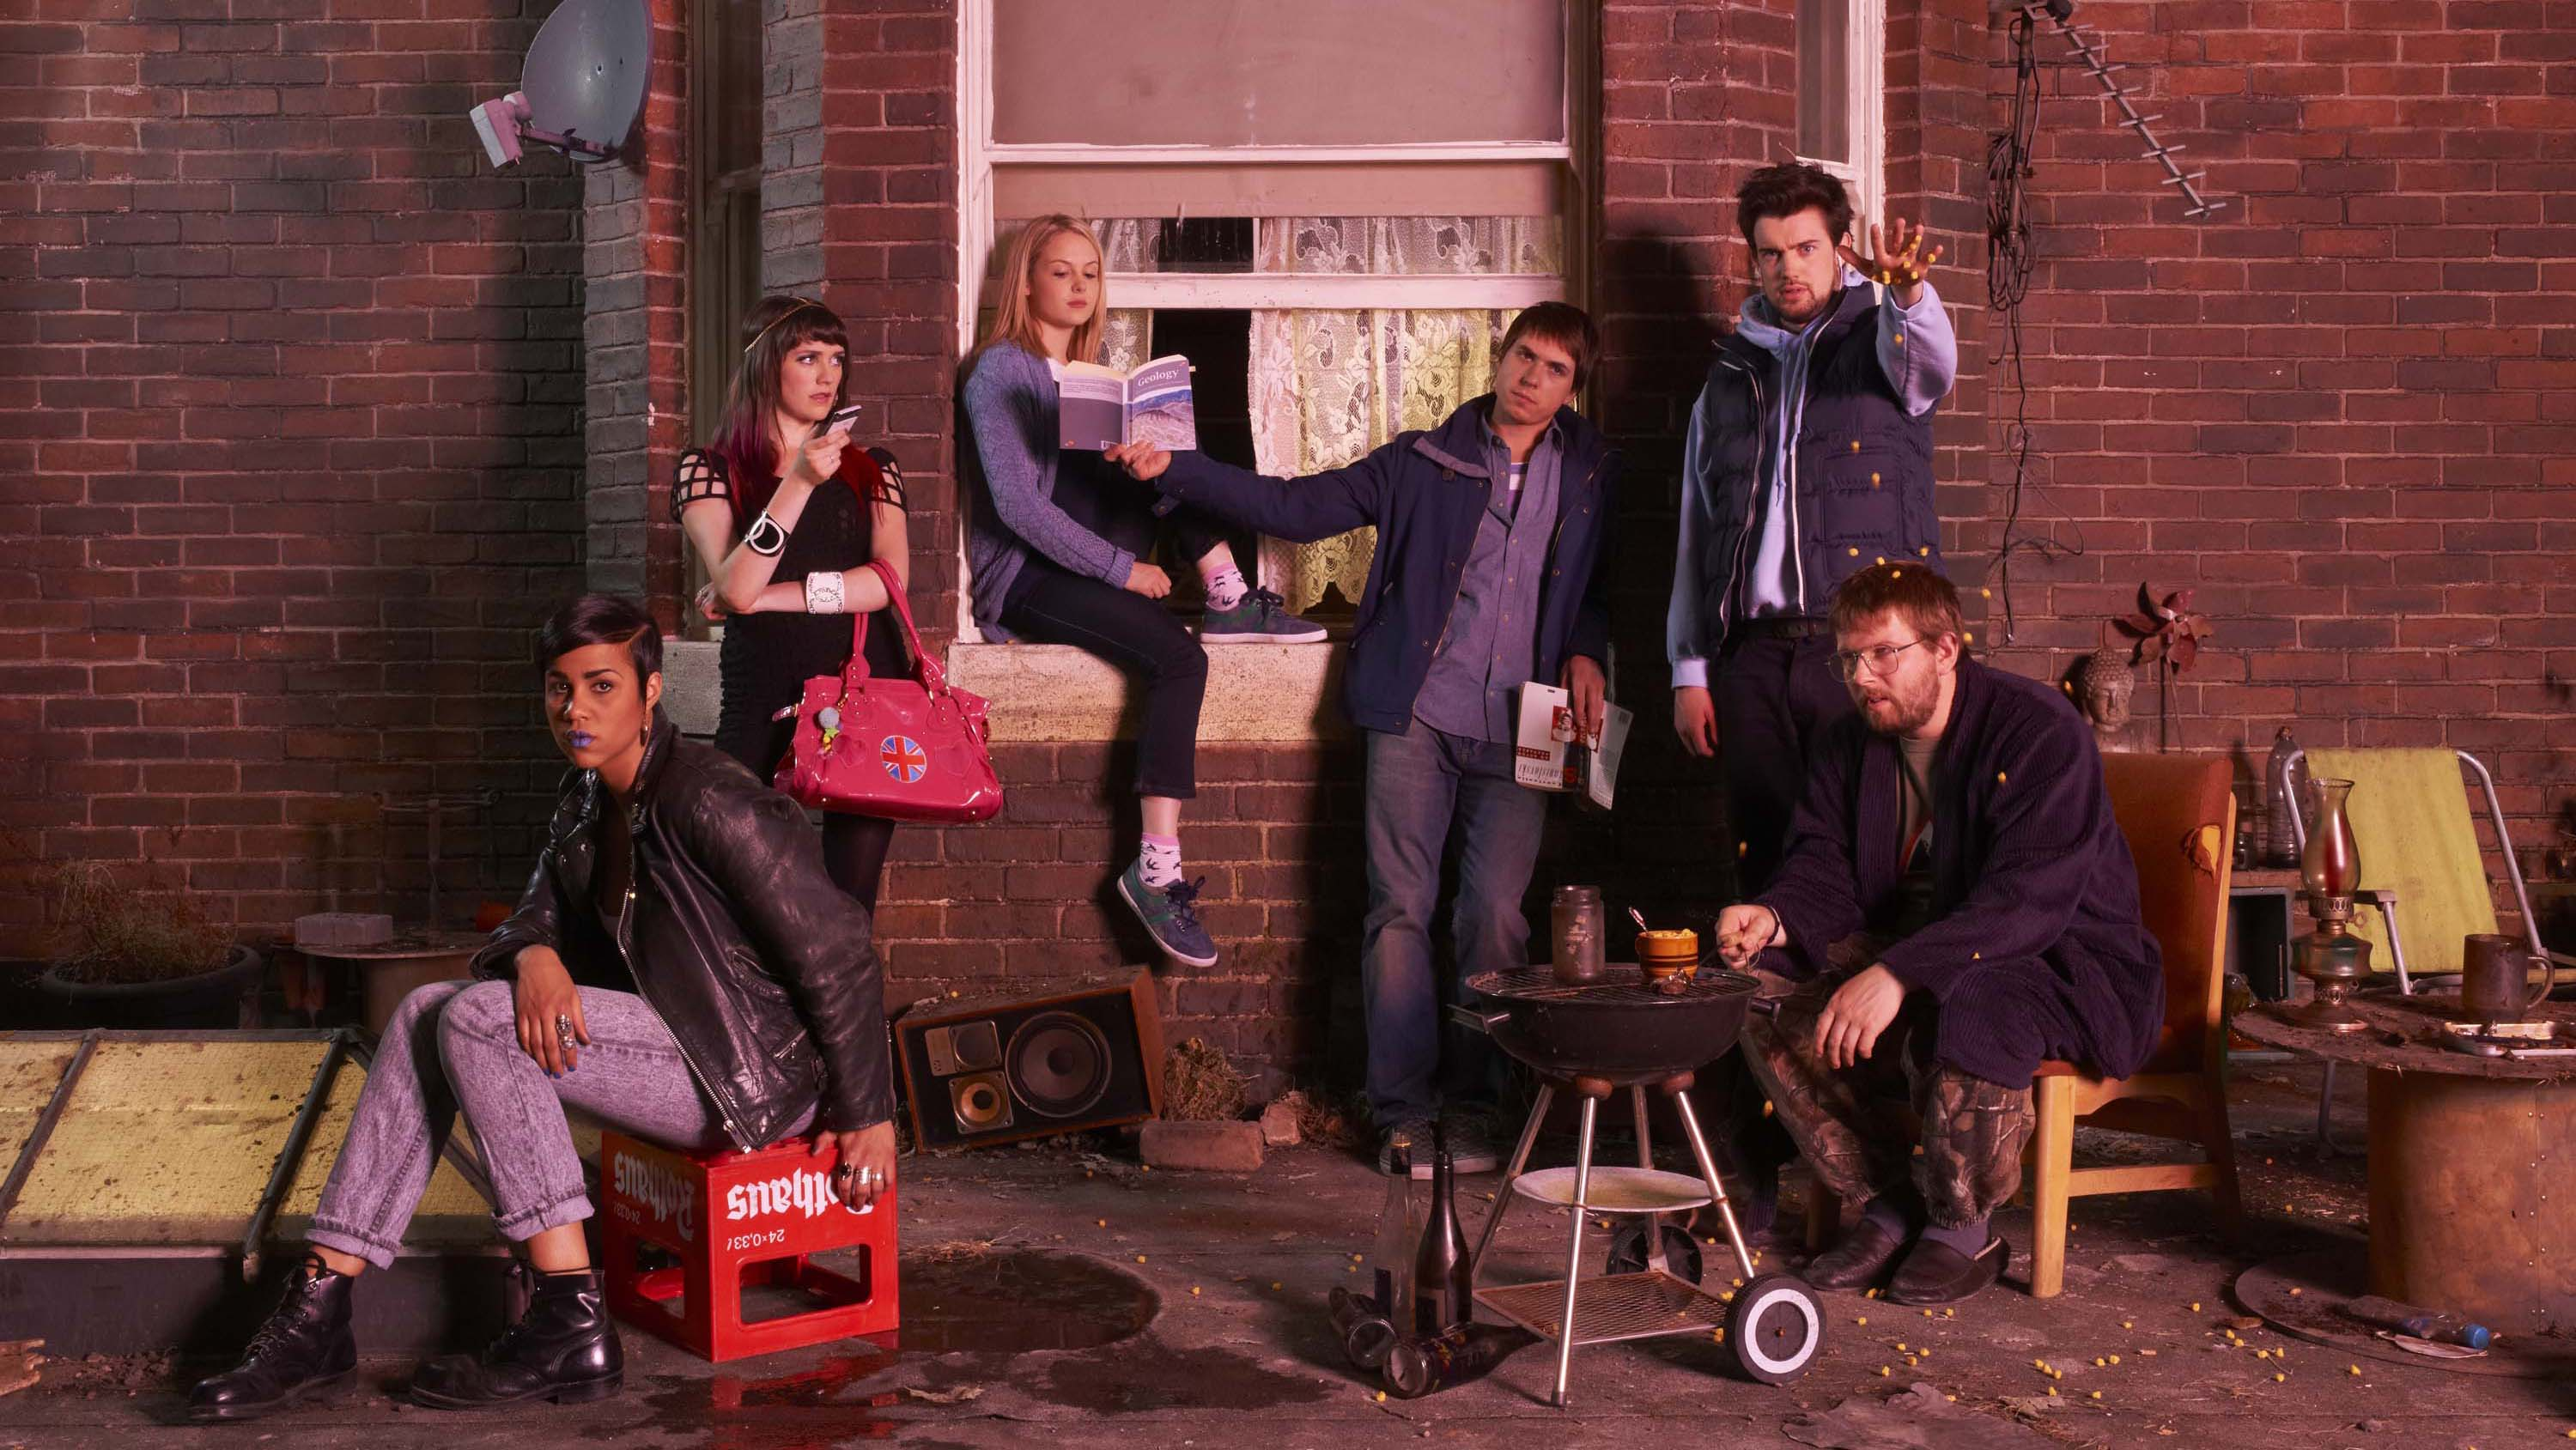 Fresh Meat Generic Zawe Ashton as Vod, Charlotte Ritchie as Oregon, Kimberley Nixon as Josie, Greg McHugh as Howard and Jack Whitehall as JP